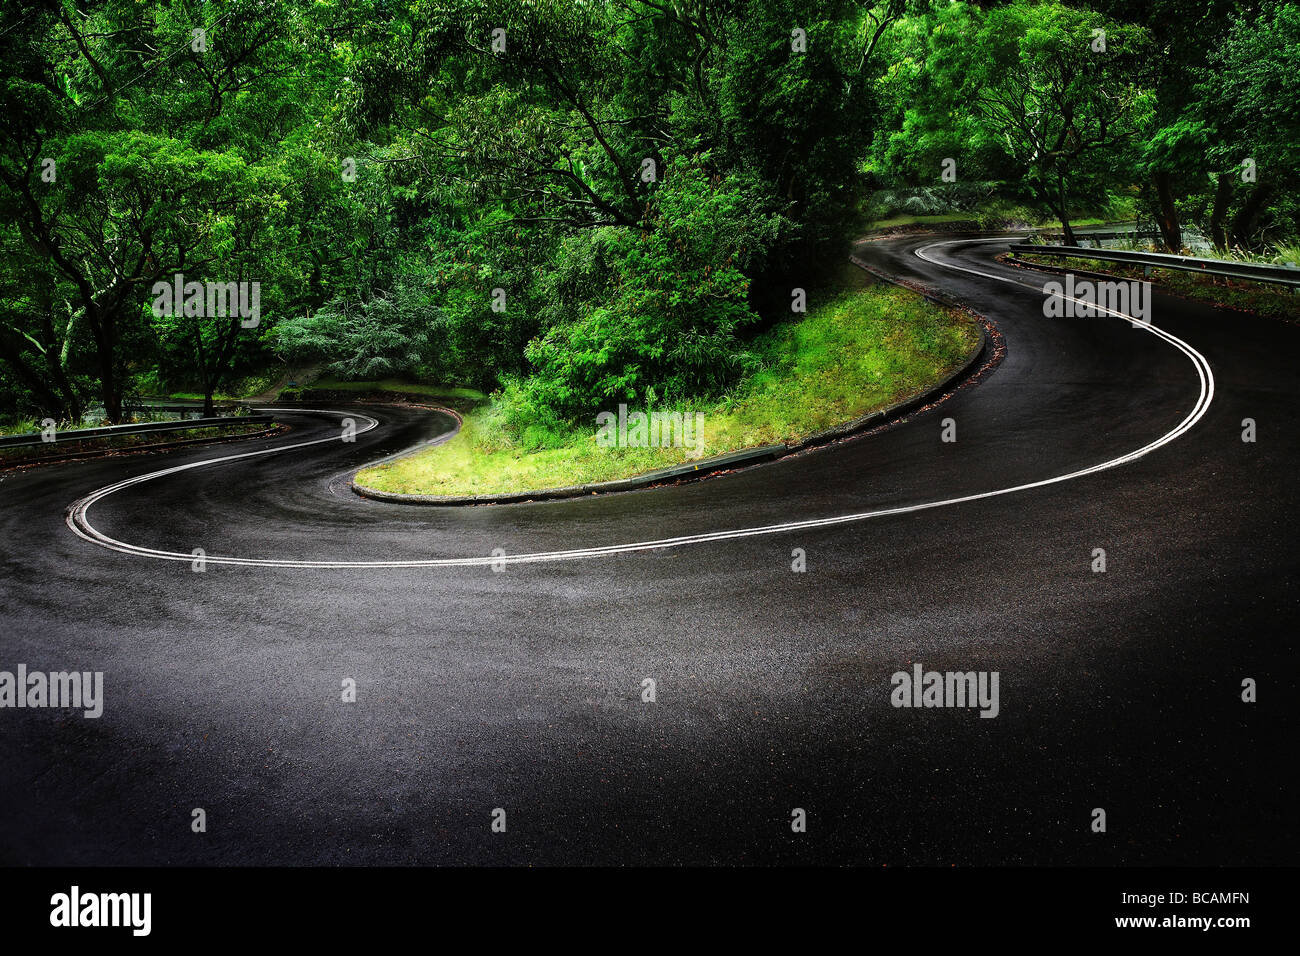 Winding road - Stock Image